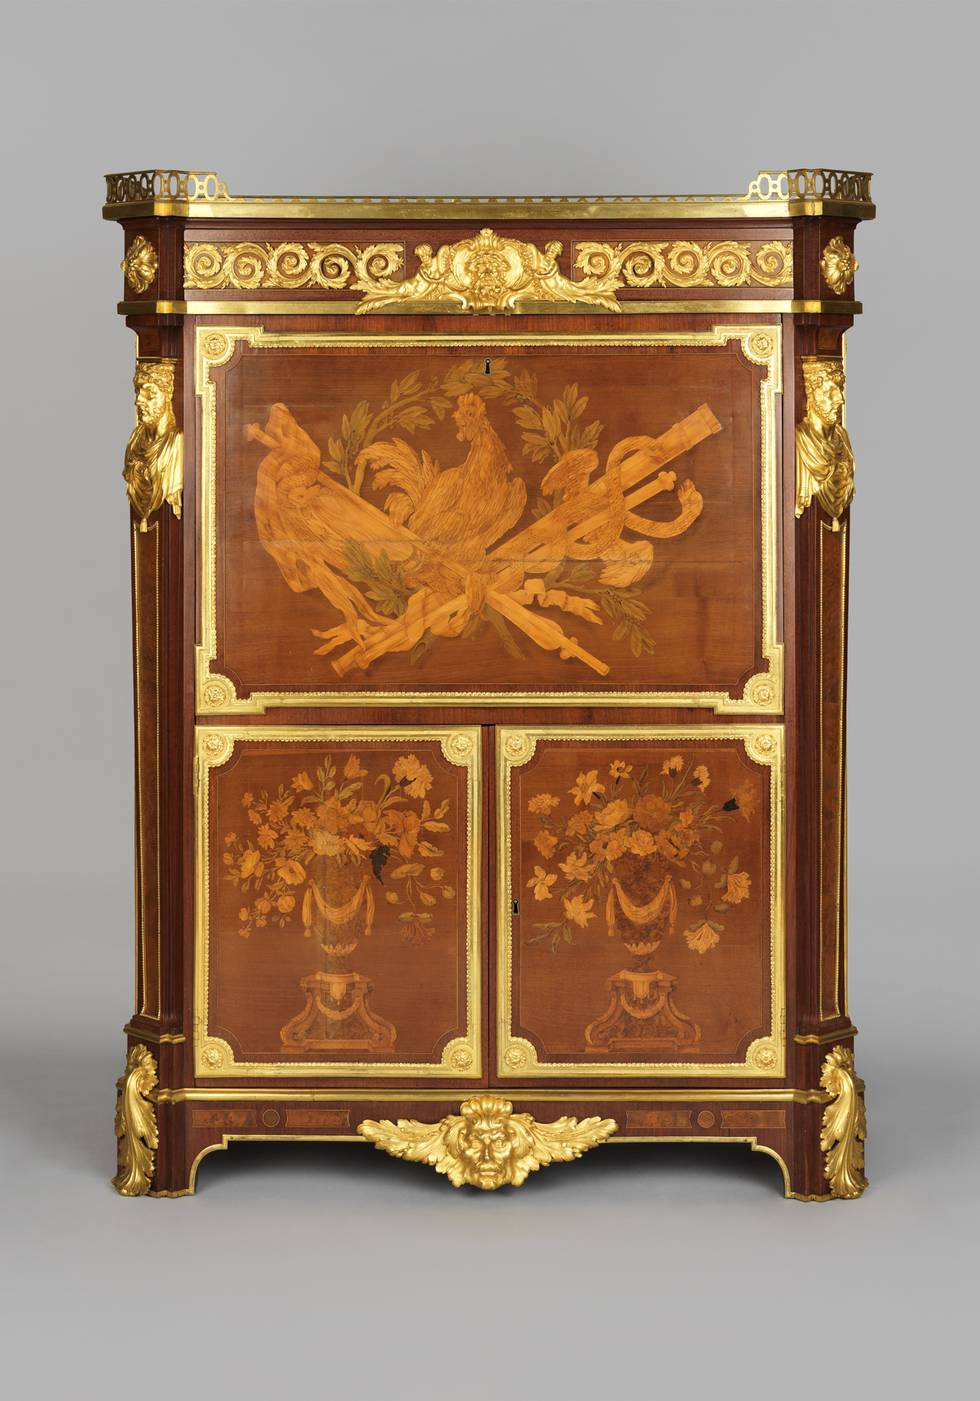 A marquetry fall-front desk